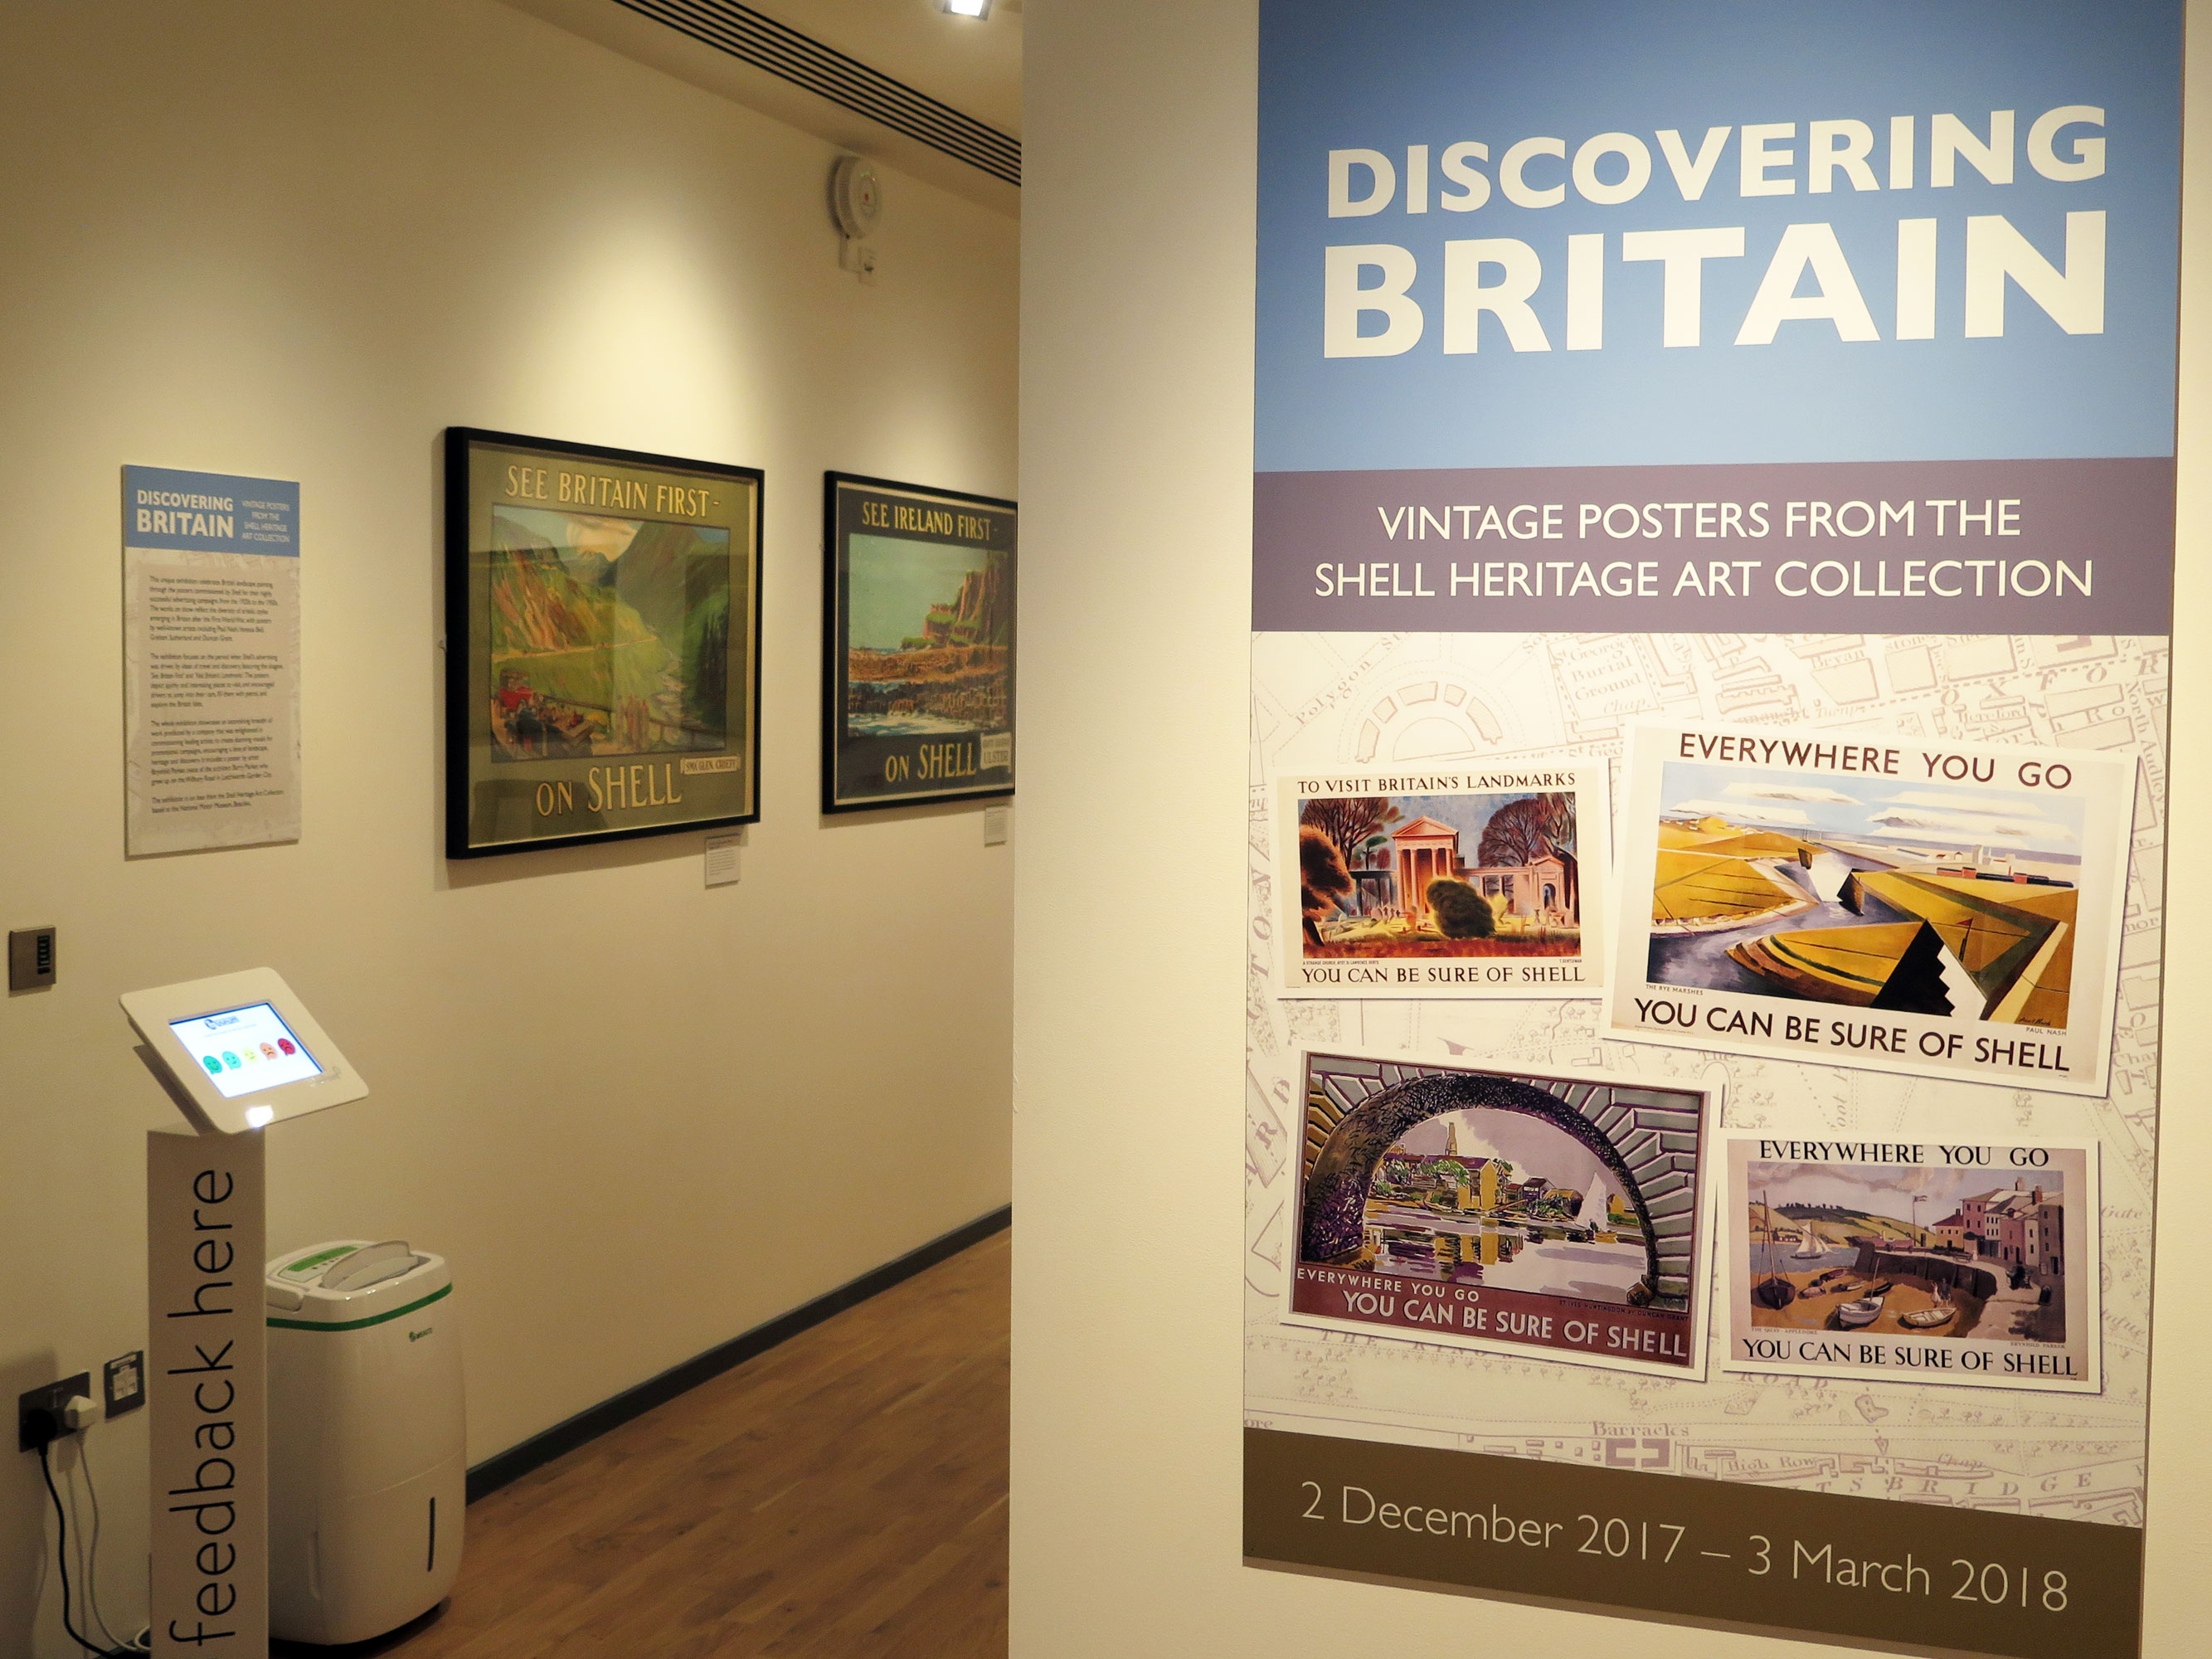 North Hertfordshire Museum - Shell Discovering Britain exhibition 2018